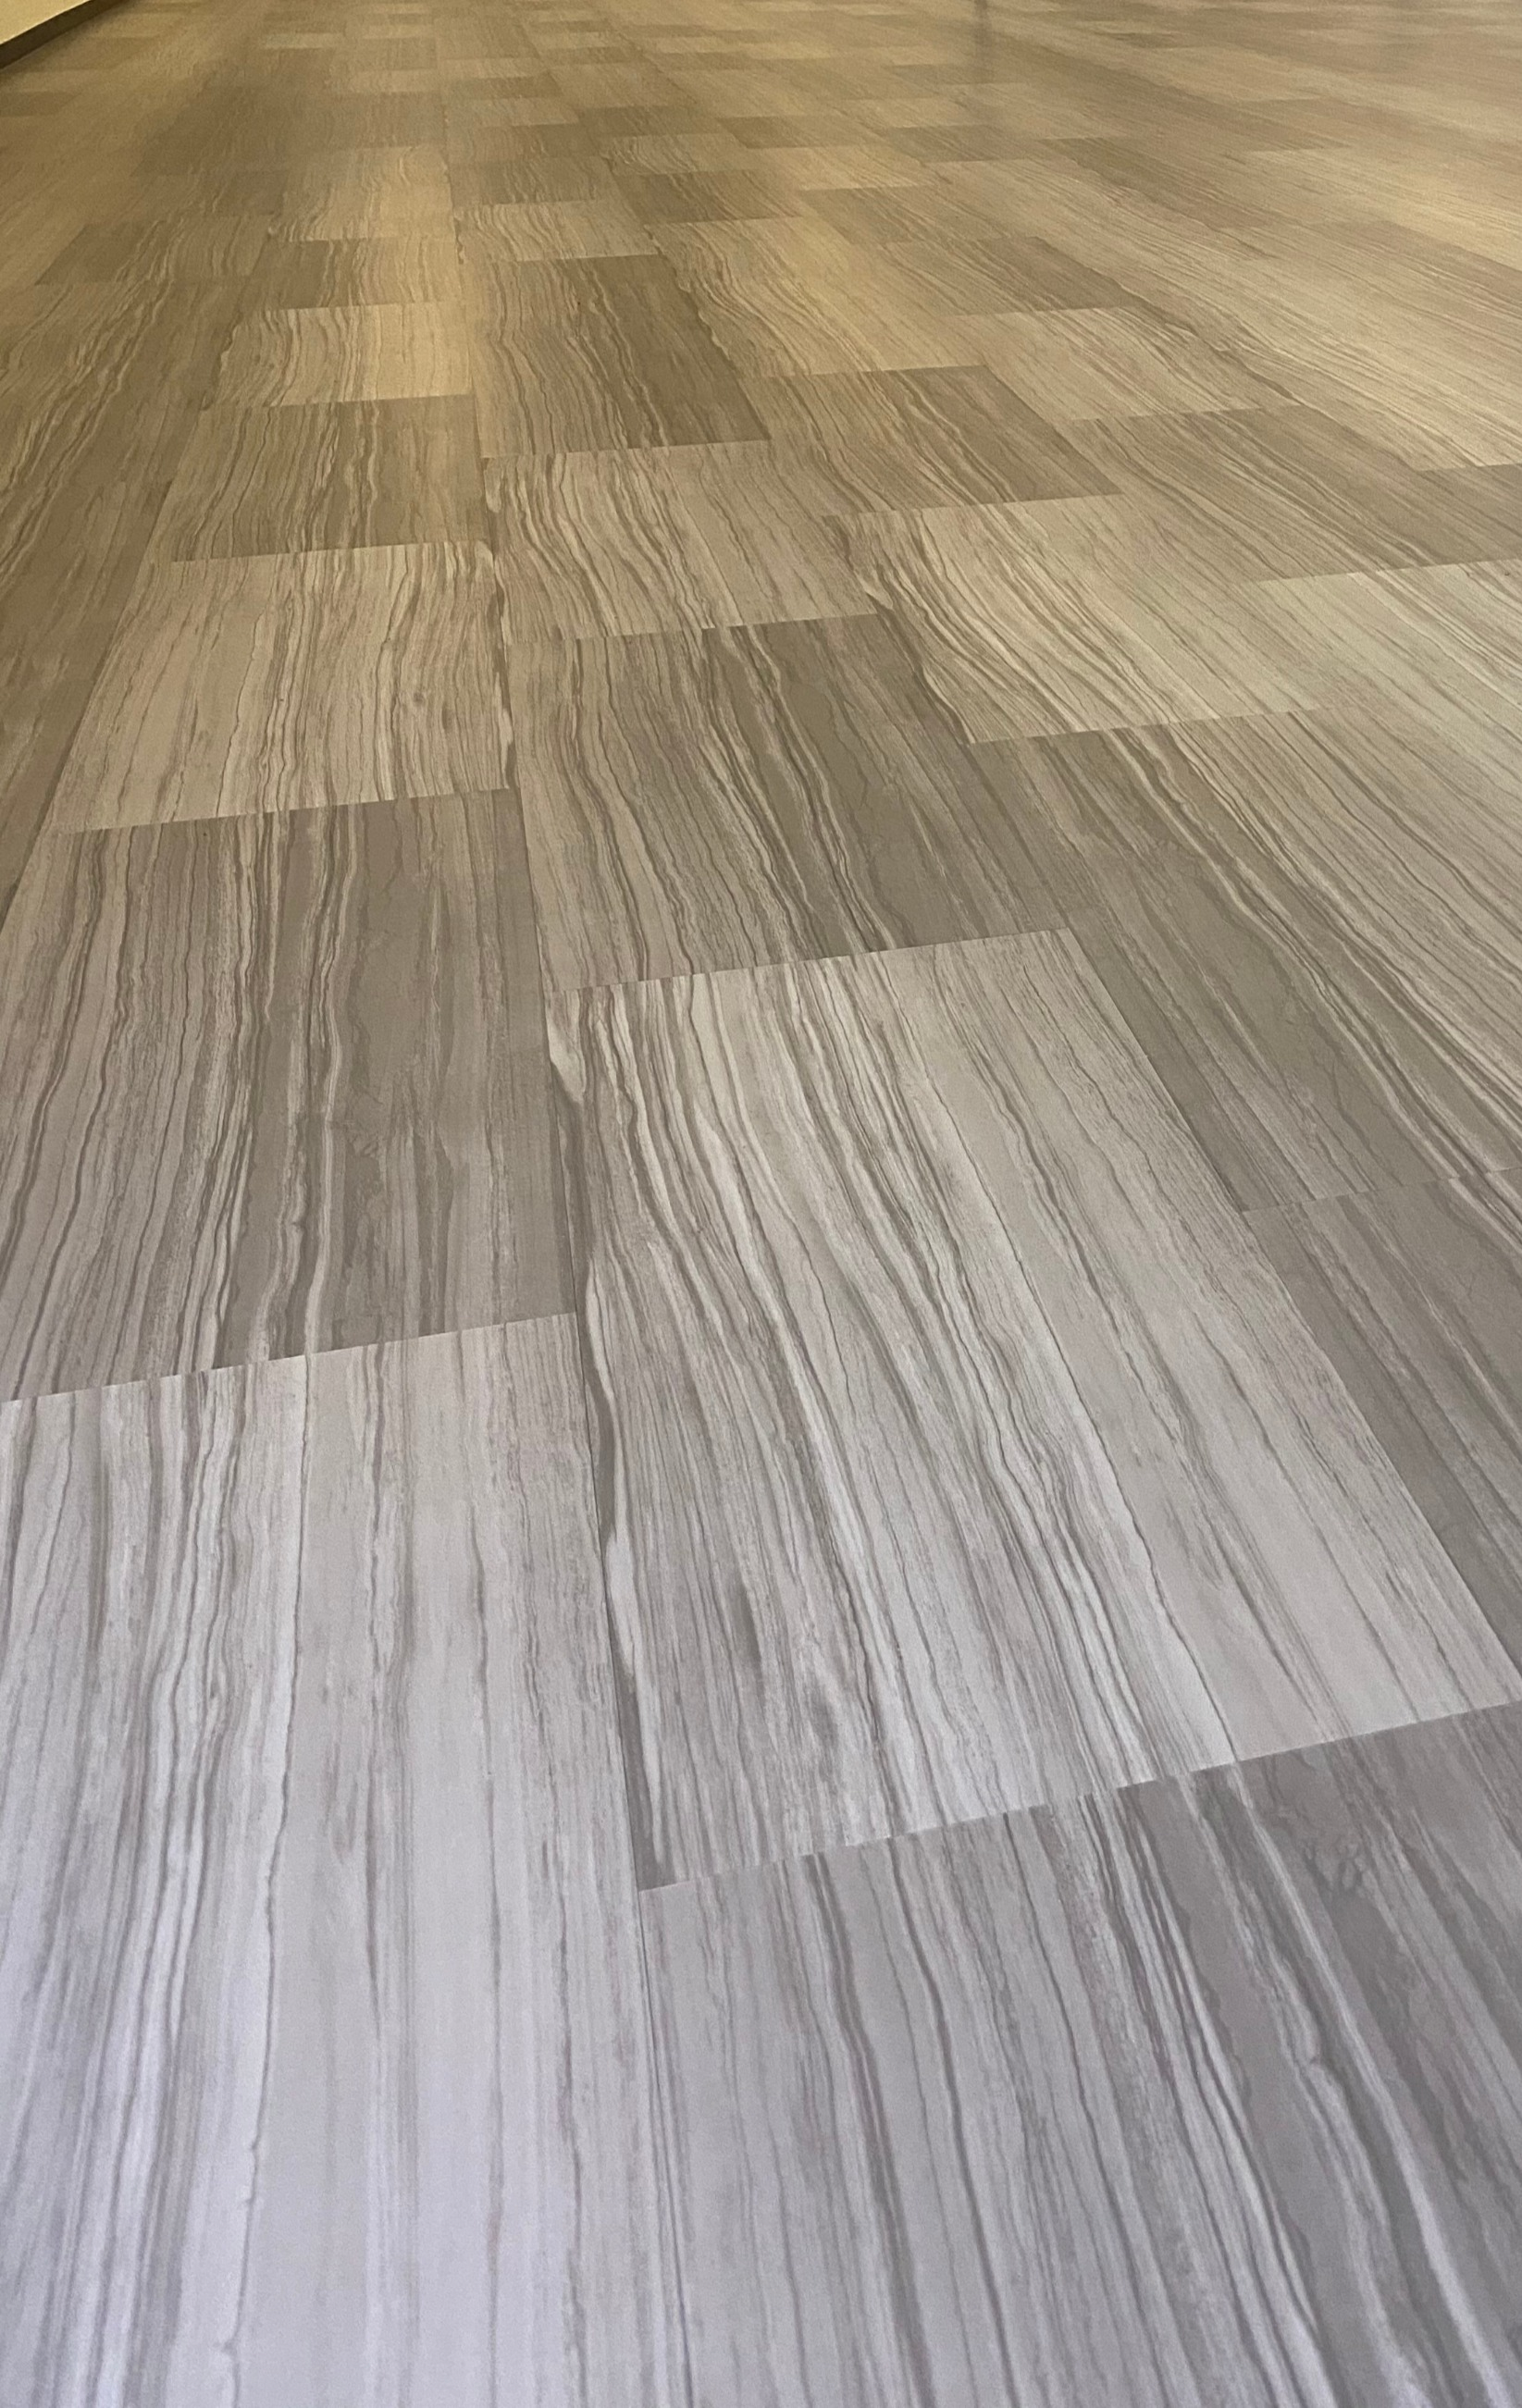 LVT close up